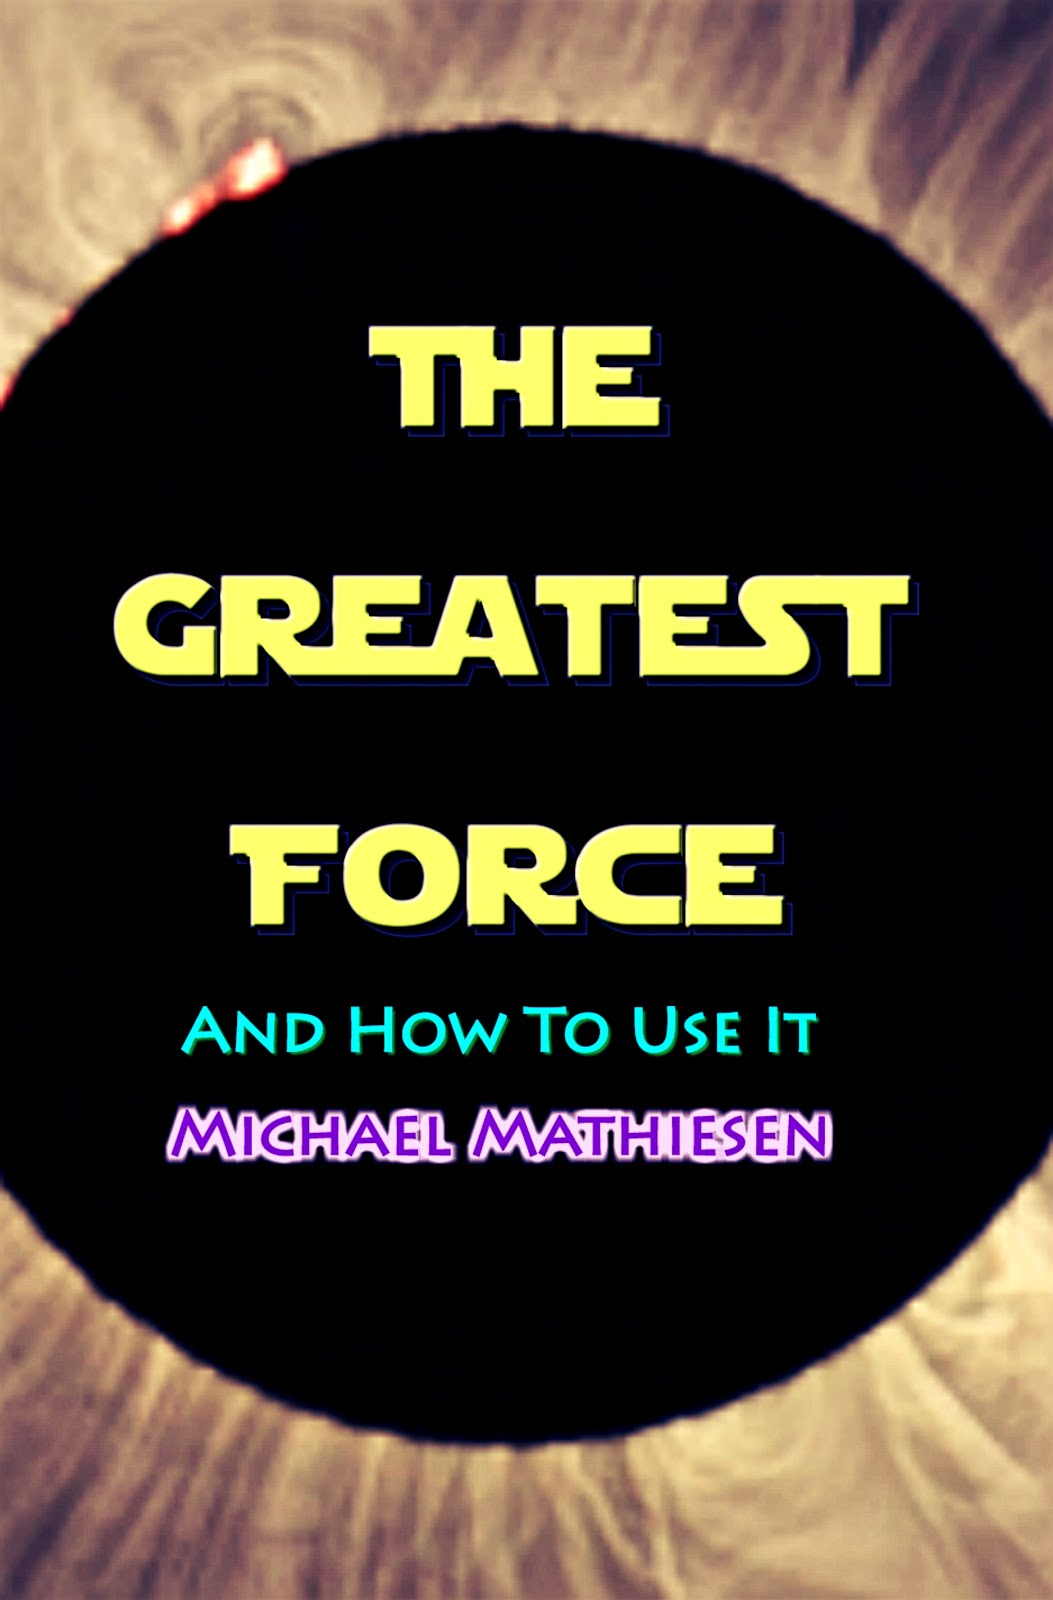 My Research On The Greatest Force